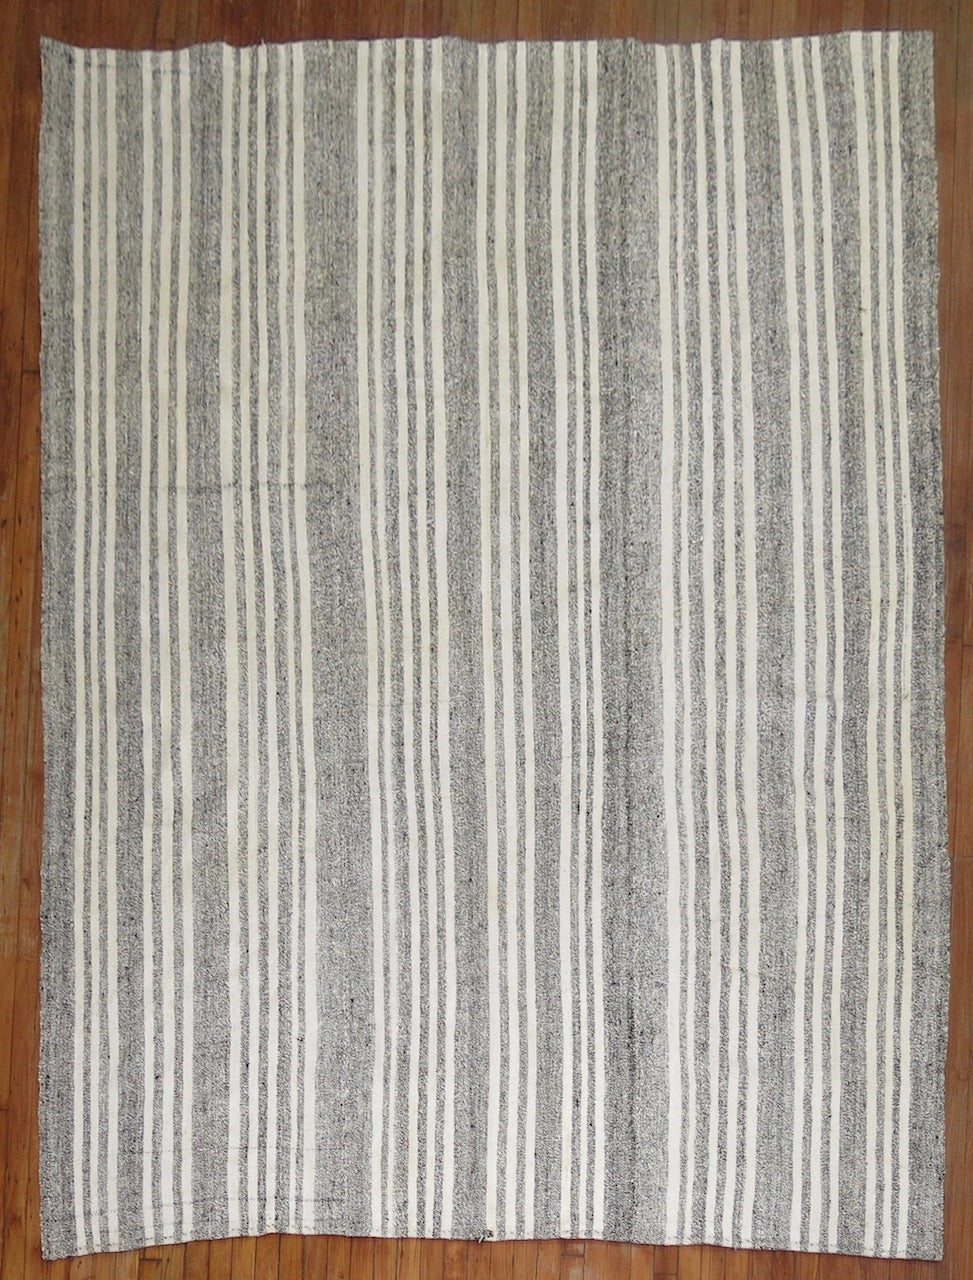 Striped Vintage Turkish Kilim